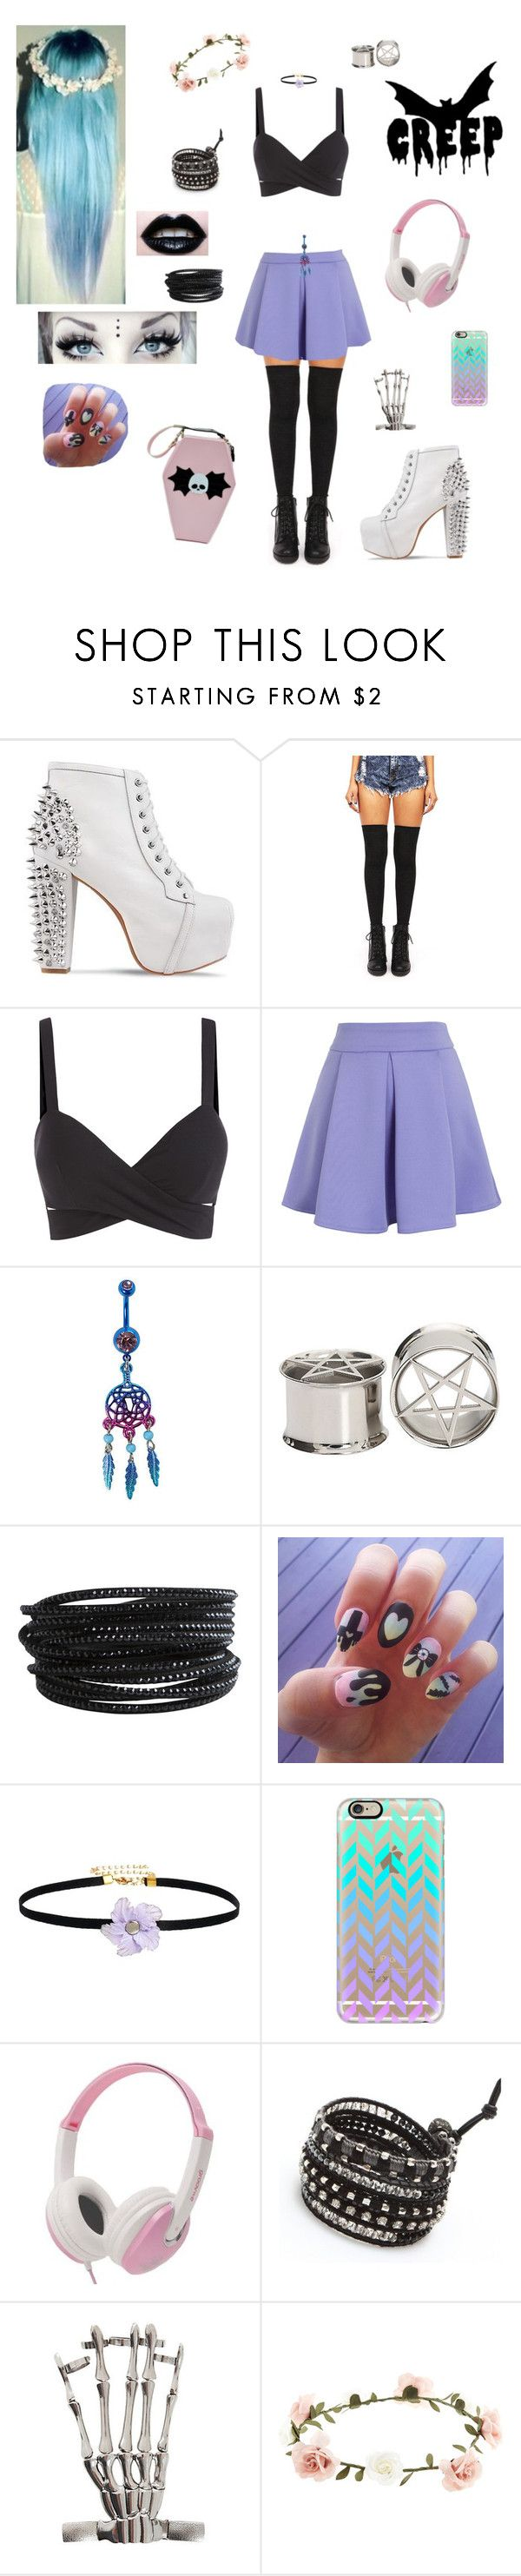 """❣☮Pastel Goth ☯☠"" by evangeline-purdy-girl ❤ liked on Polyvore featuring Jeffrey Campbell, Chicwish, Pieces, Gogo Philip, Casetify, NAKAMOL and Accessorize"